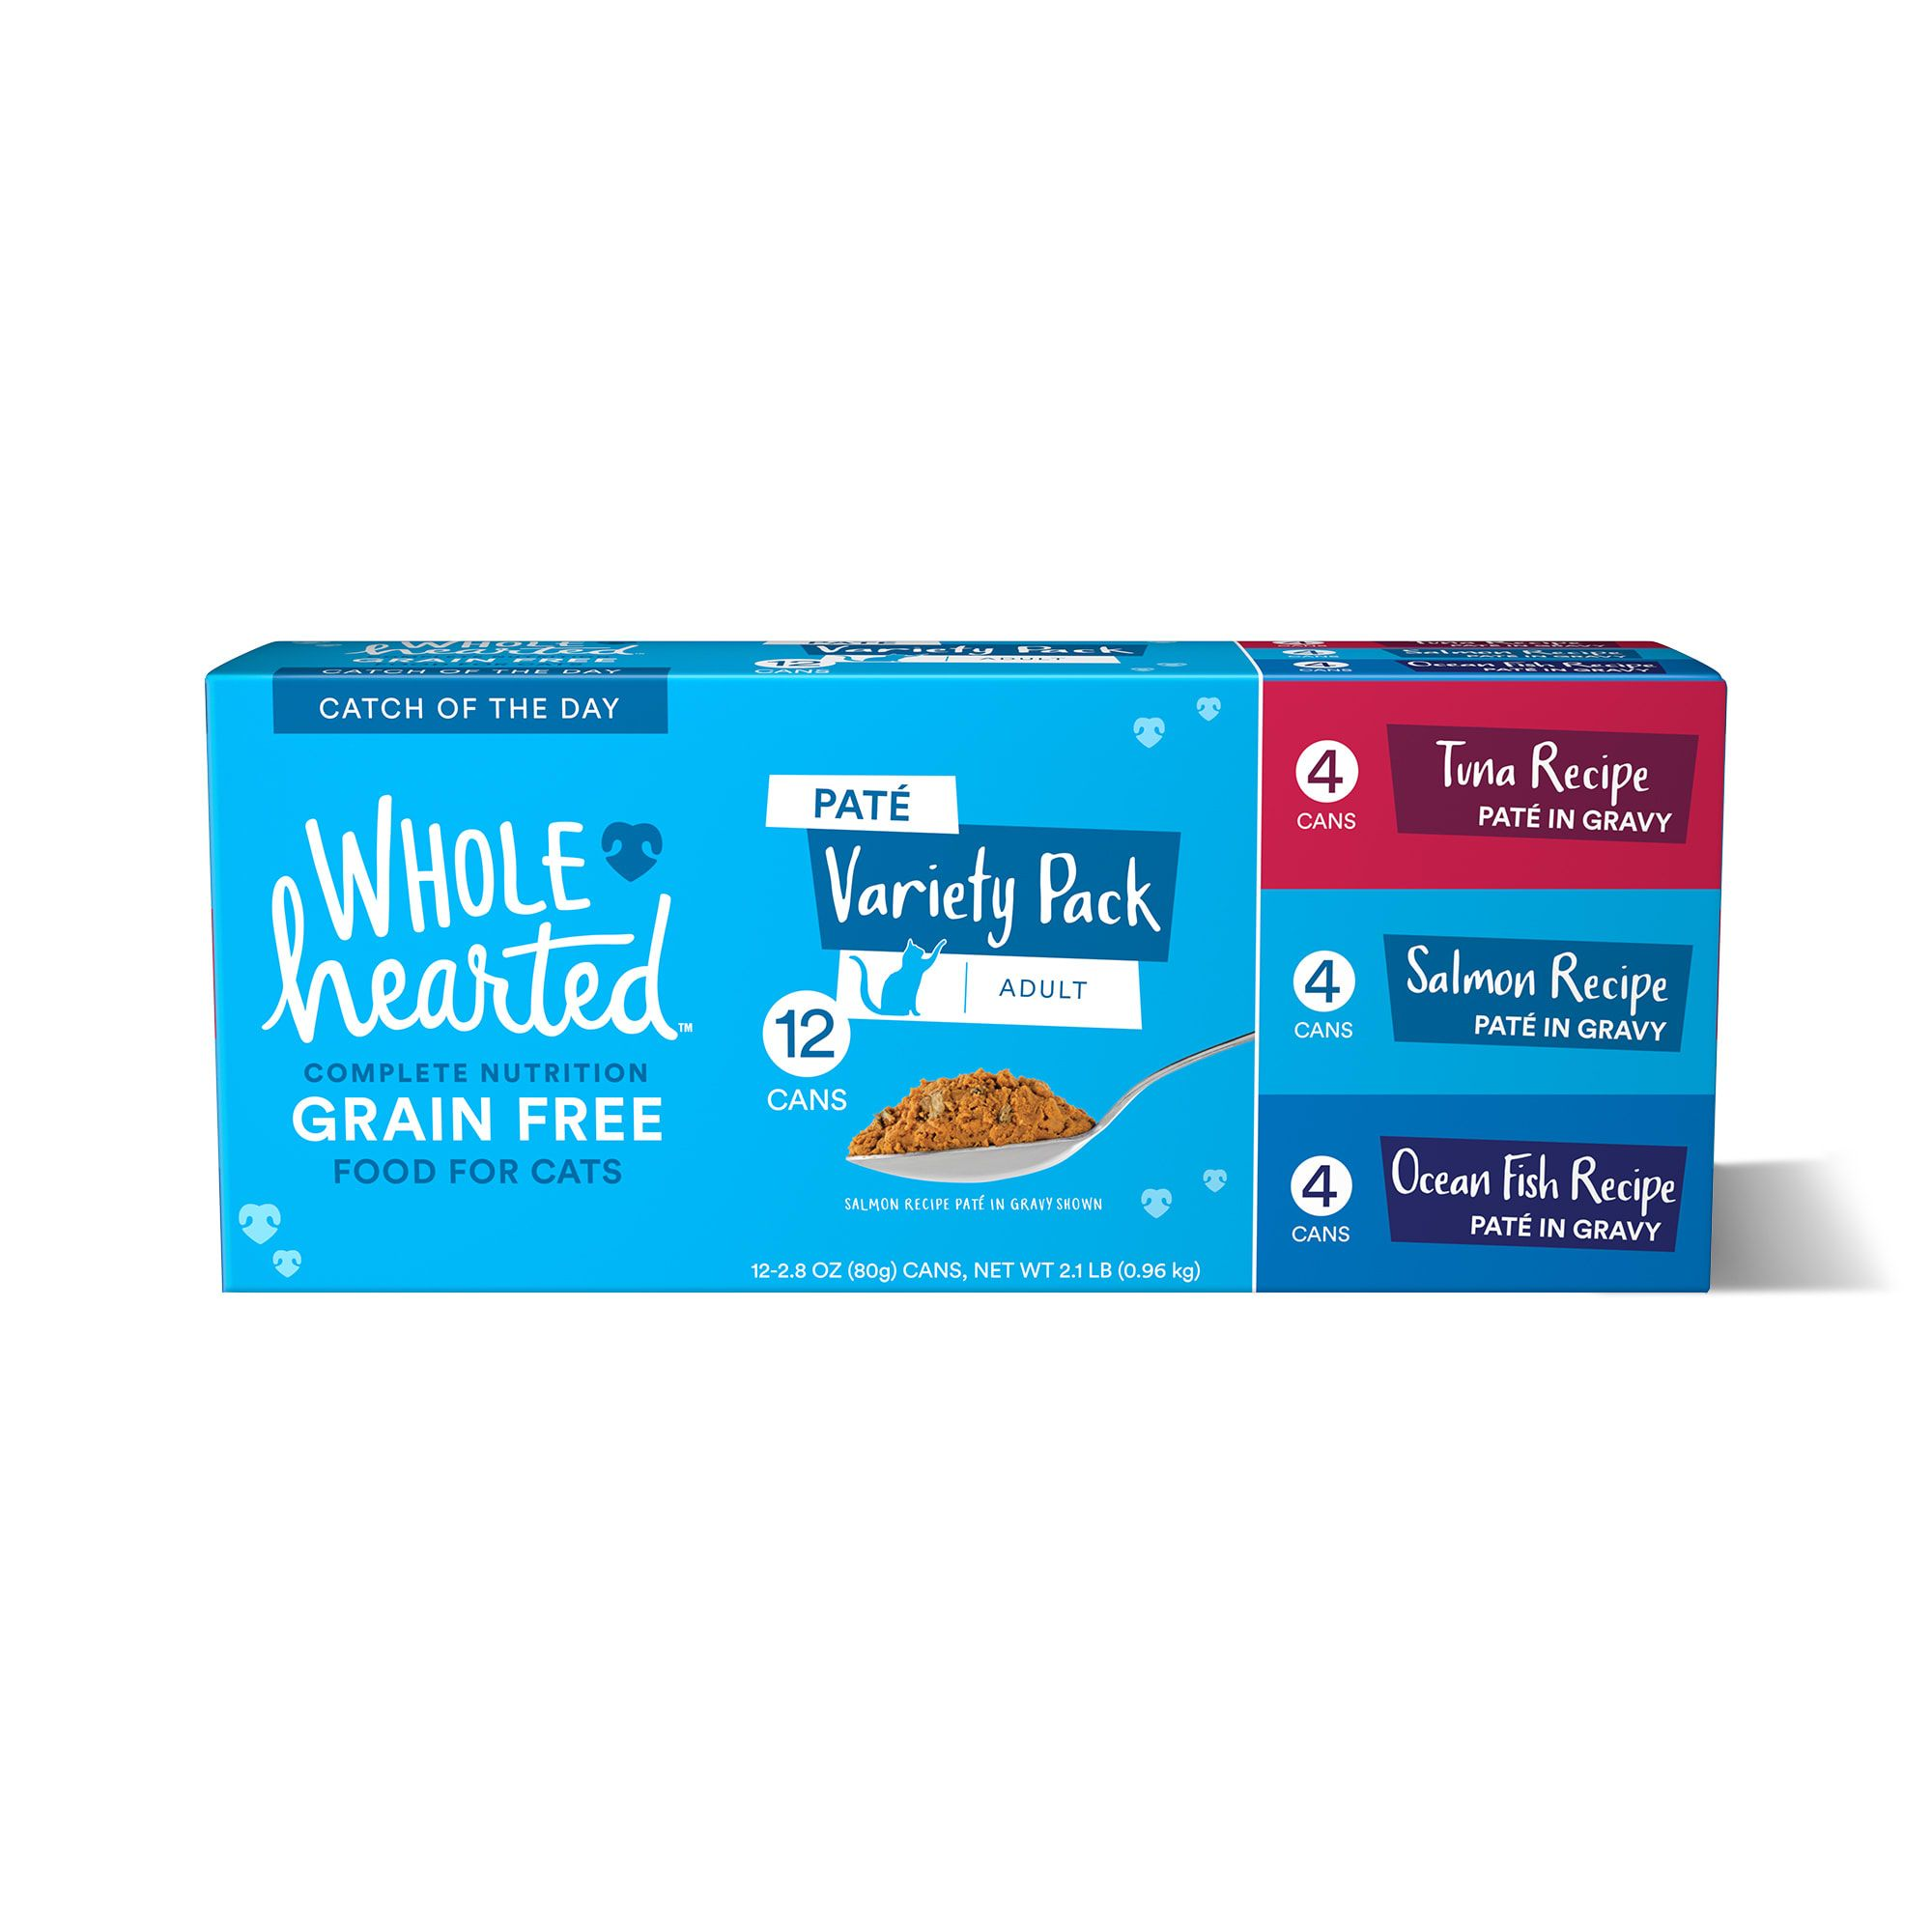 Wholehearted Grain Free Pate Catch Of The Day Wet Cat Food Variety Pack For All Life Stages 2 8 Oz Petco In 2020 Wet Cat Food Cat Food Variety Pack